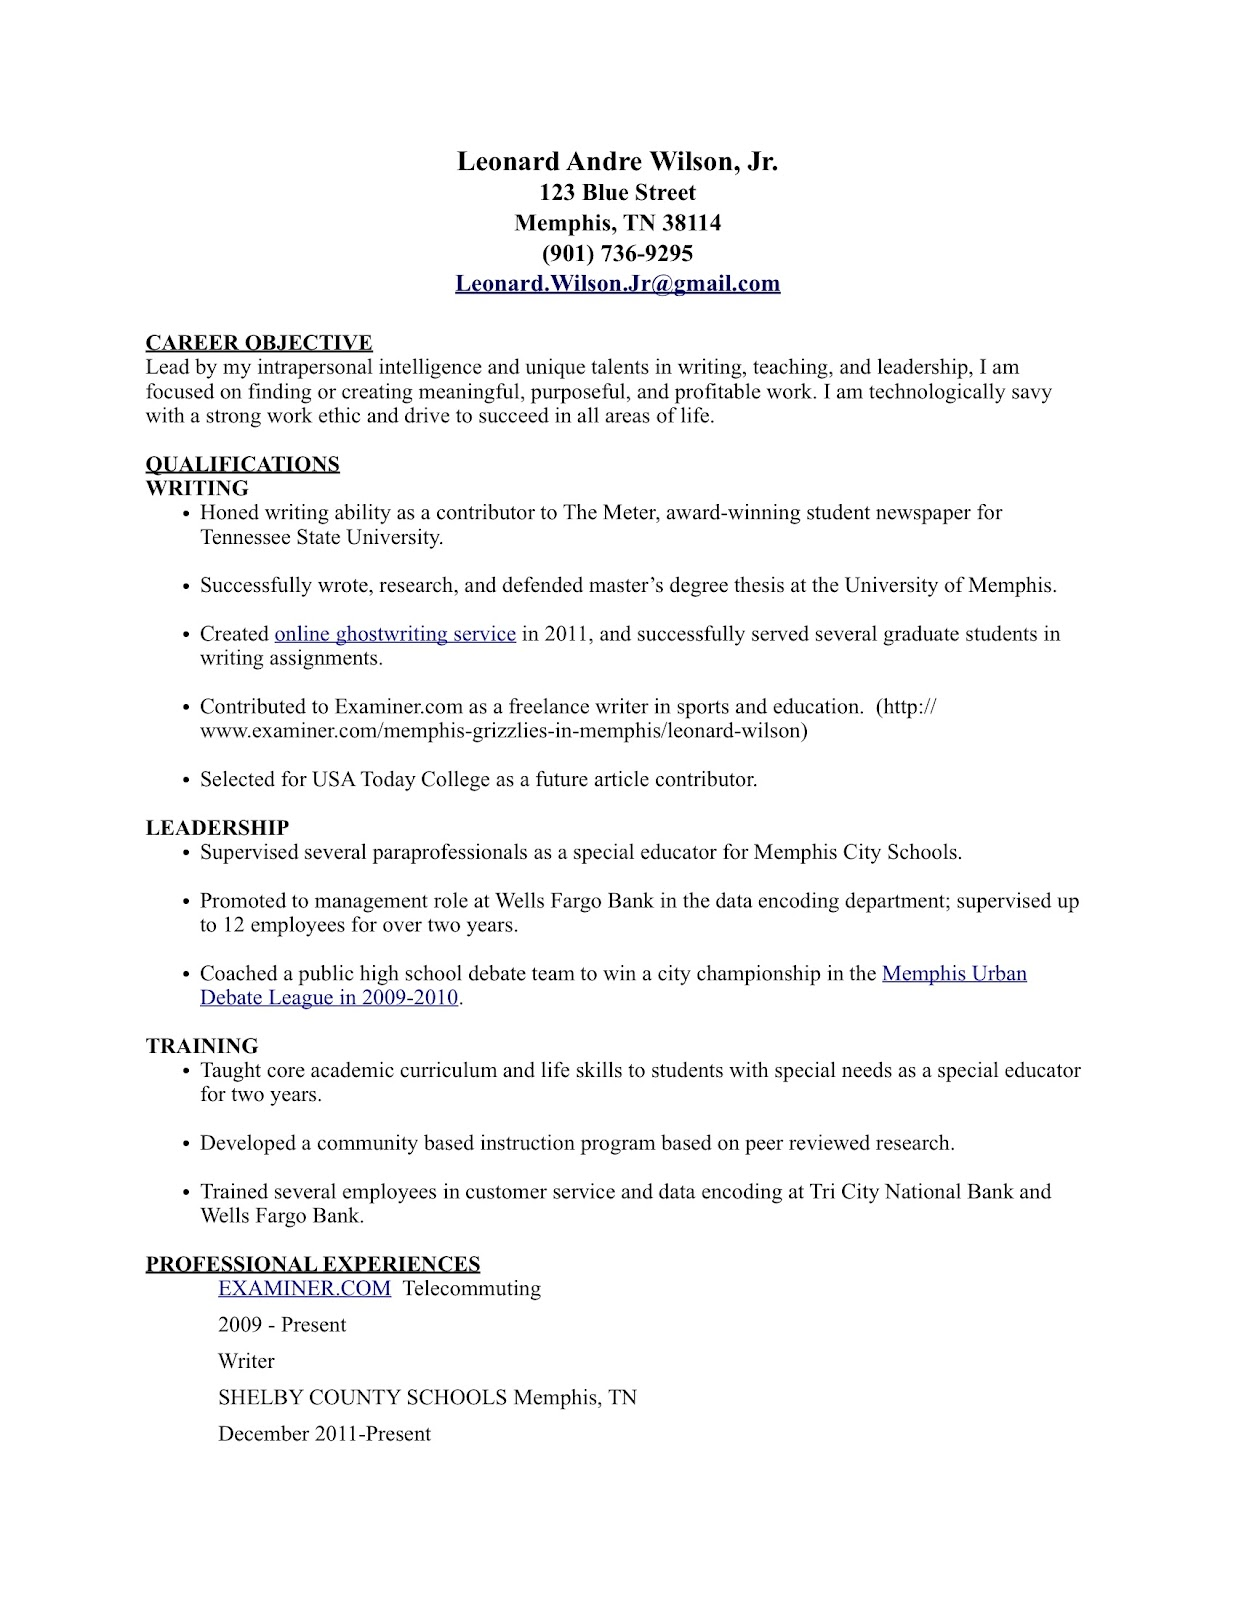 how to write a great cna resume resume builder for job how to write a great cna resume cna resume objective certified nursing assistant skills and interests